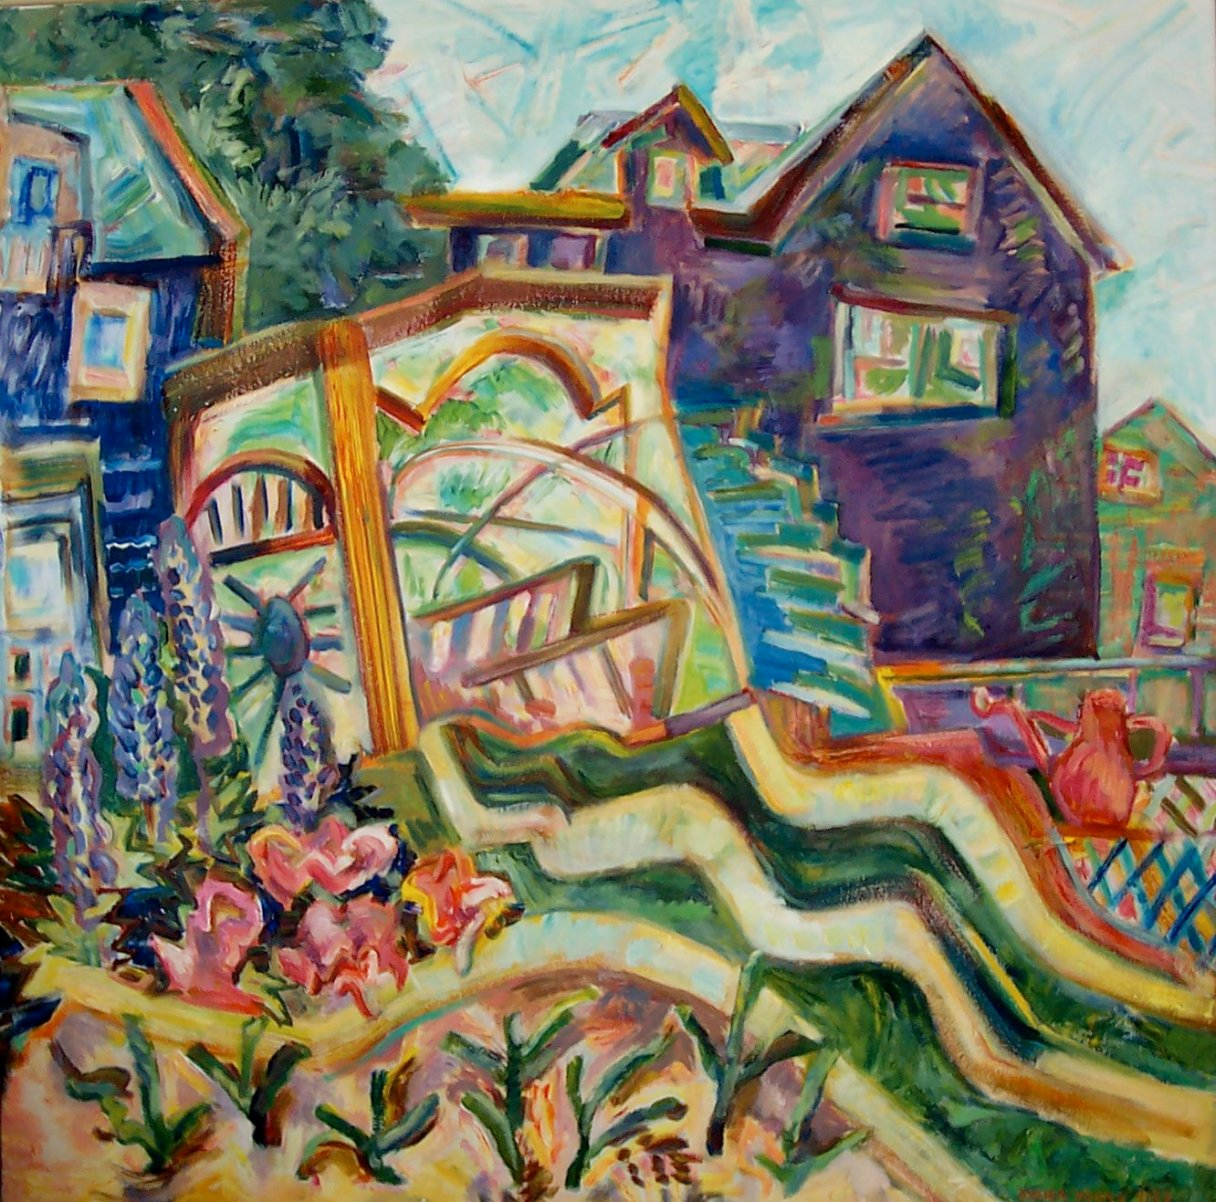 The Marvelous Arbor, 2006, Diana Young, American b. 1936, 40 x 40 inches, acrylic on canvas, $3200